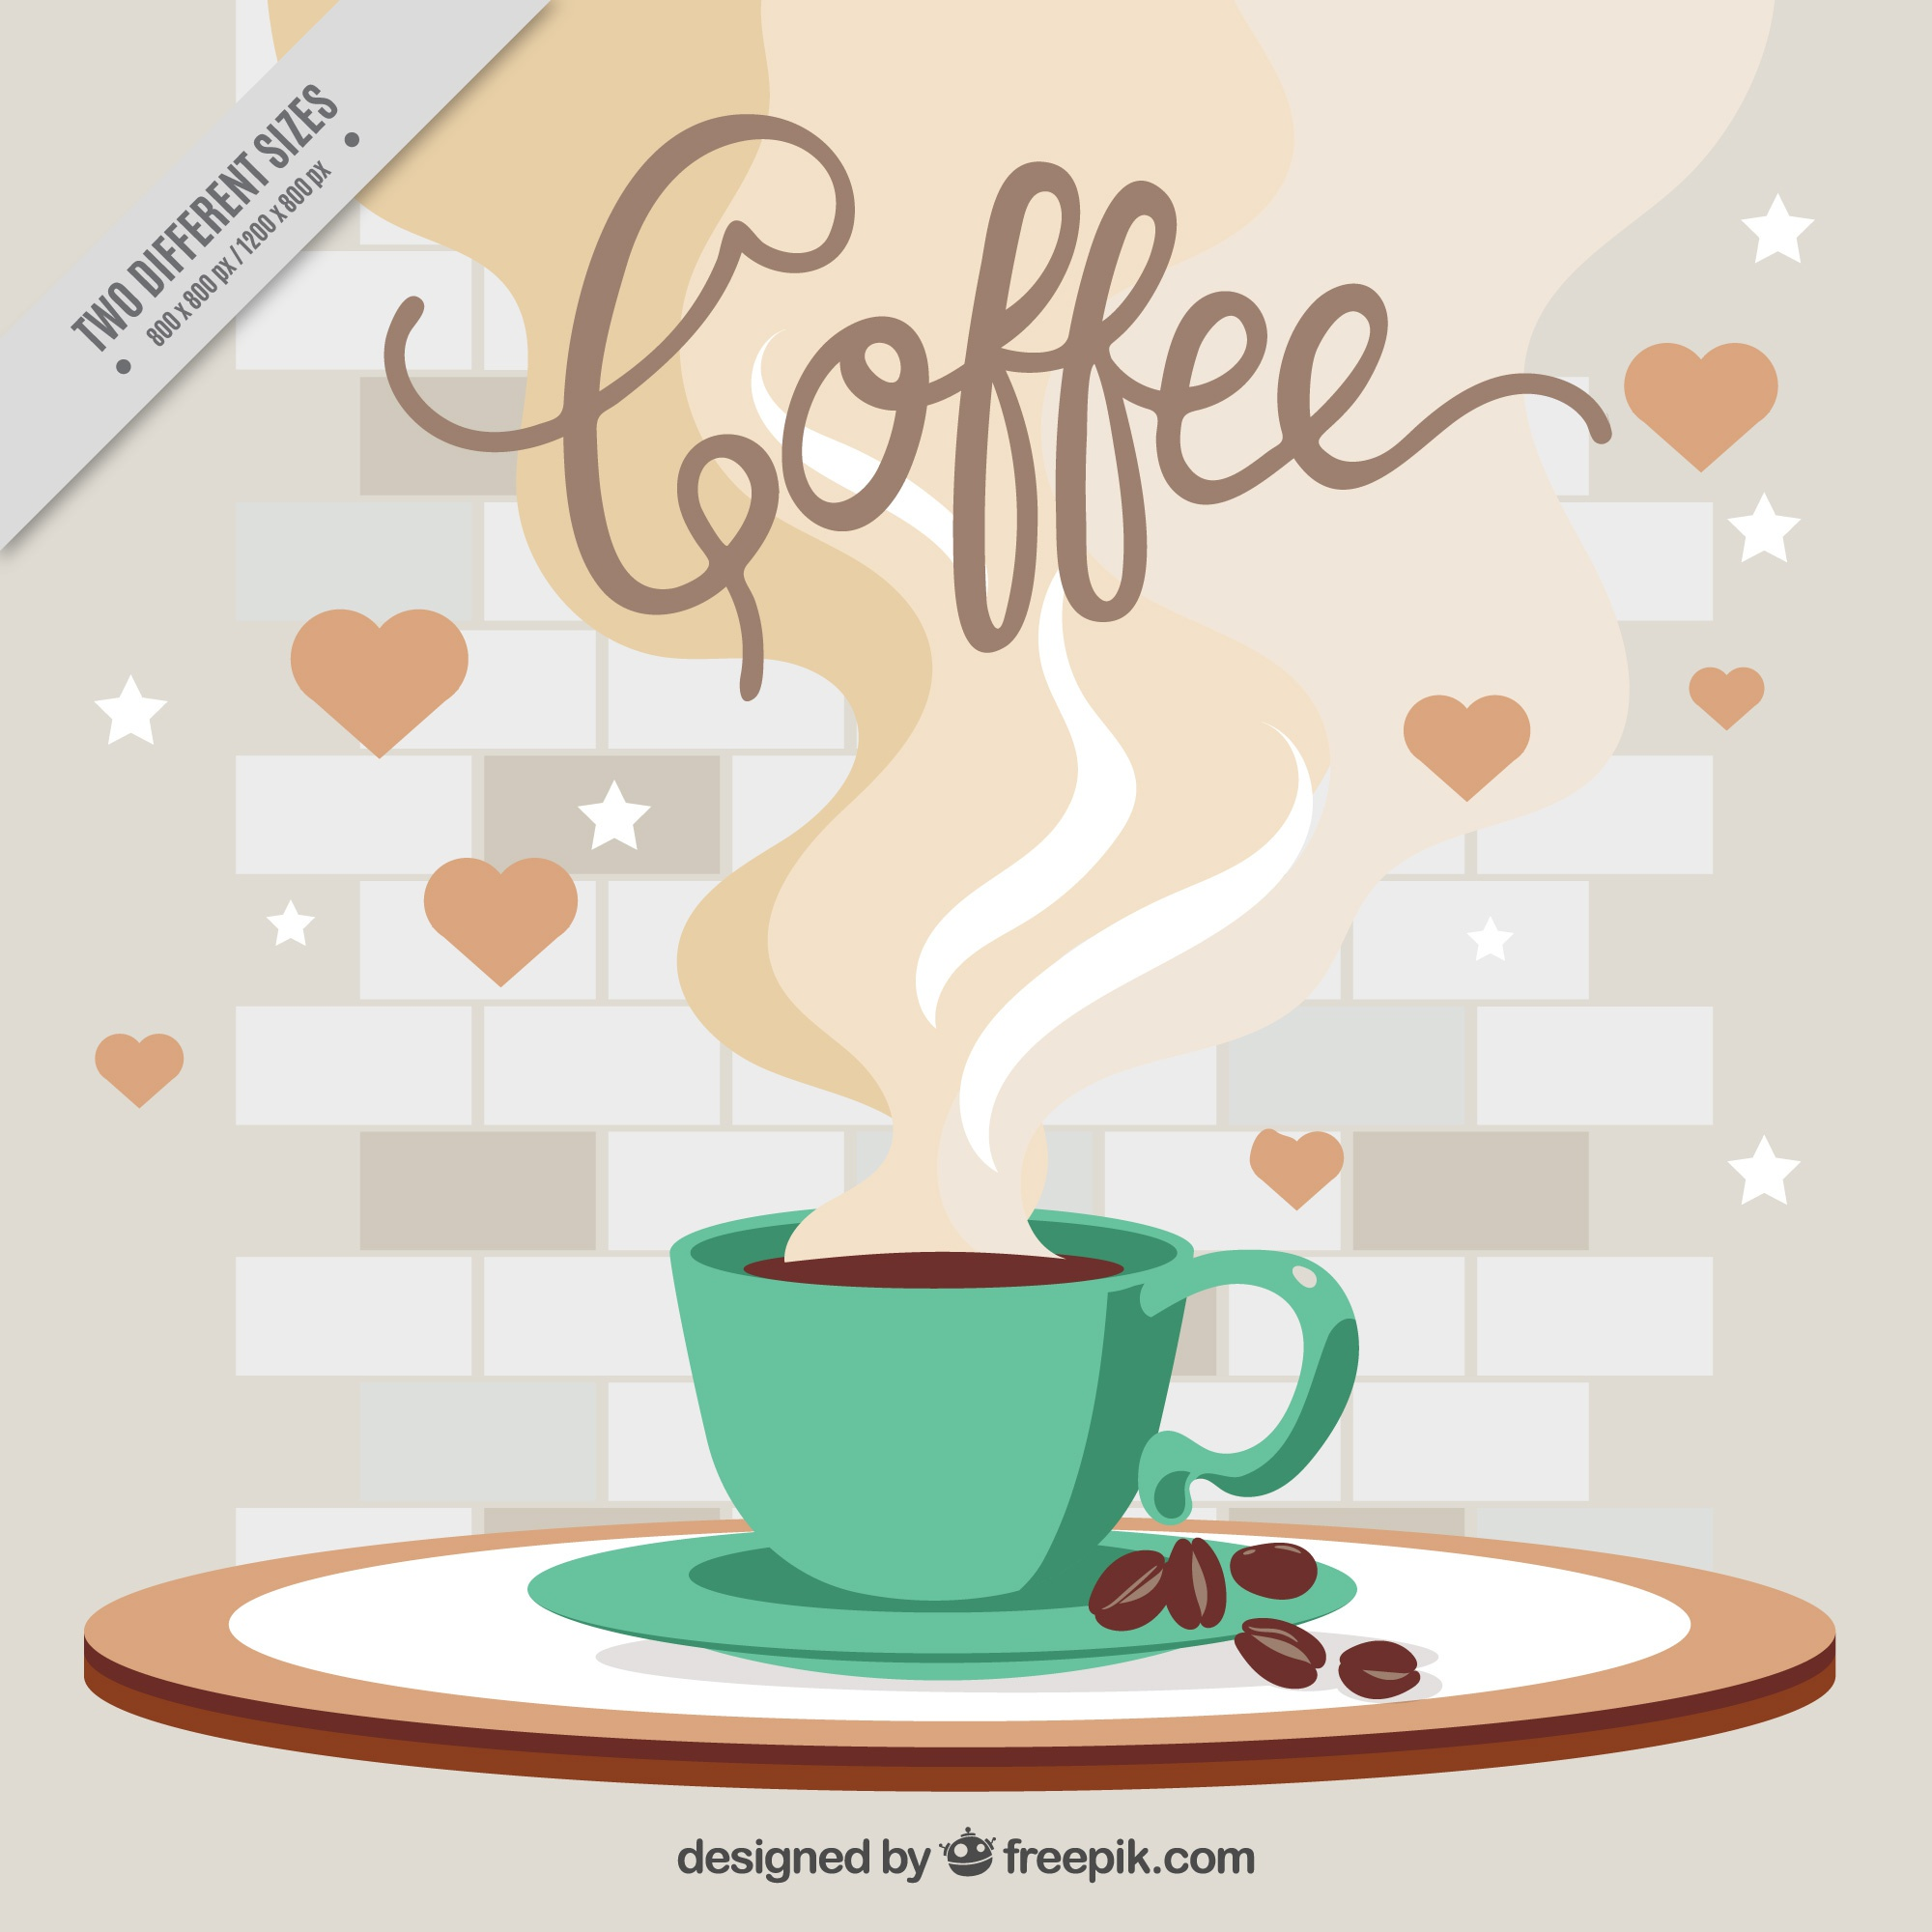 Vintage background of coffee cup